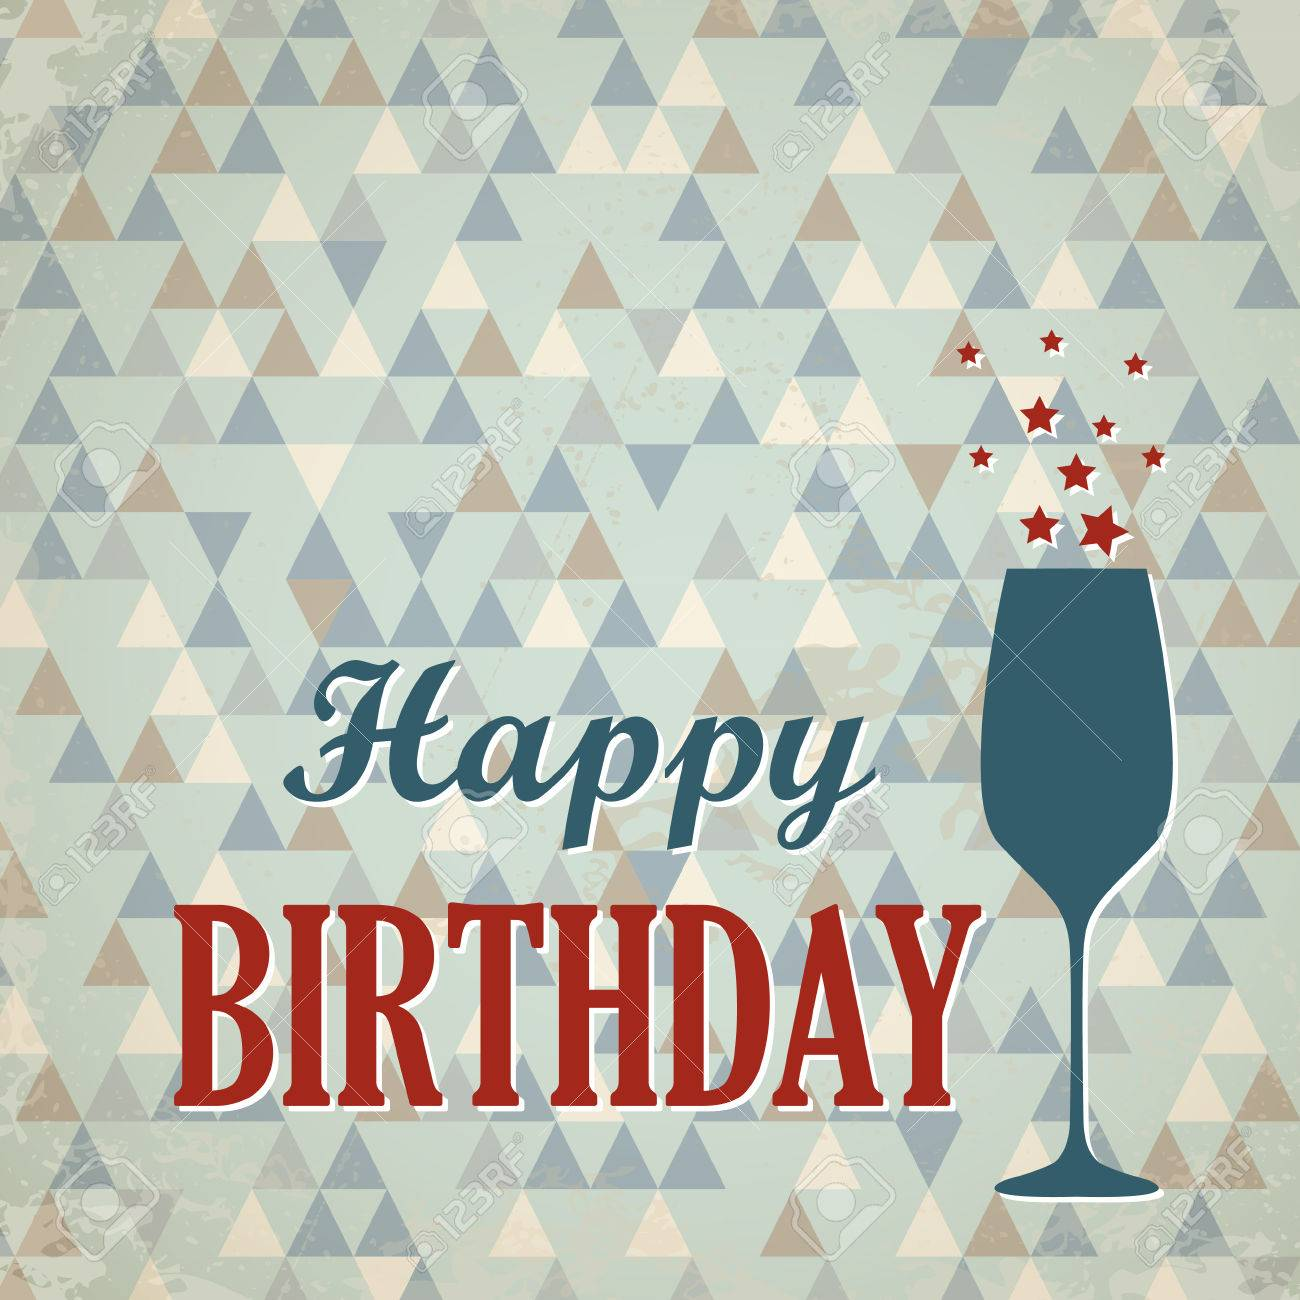 Red And Blue Retro Triangular Happy Birthday Card With Wine Glass Concept Stock